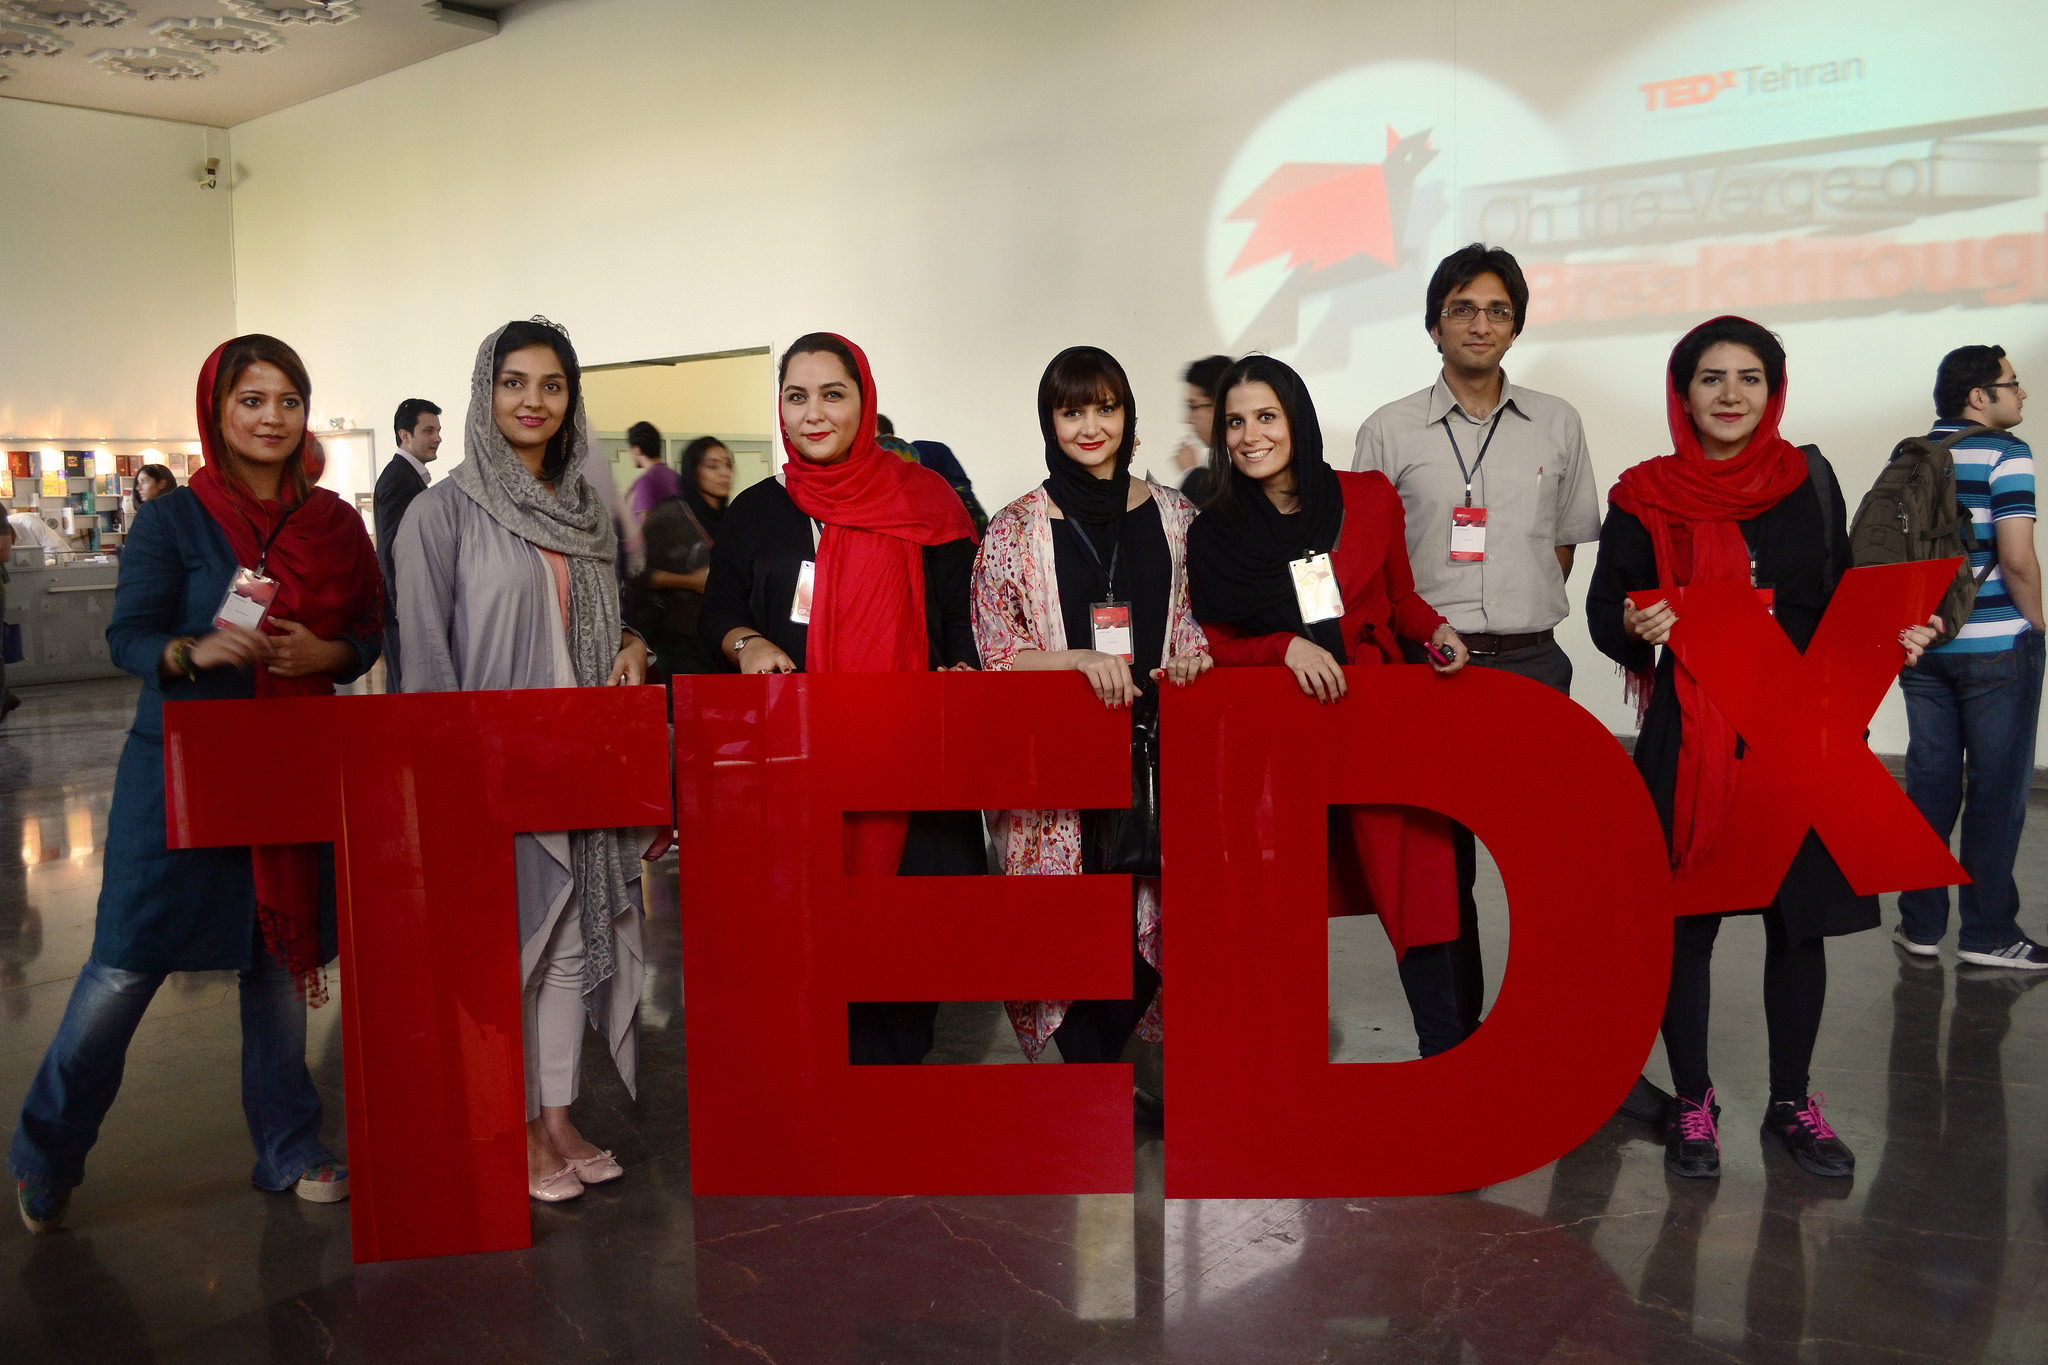 The TEDx letters, proudly displayed. Photo: Nooshafarin Movaffagh